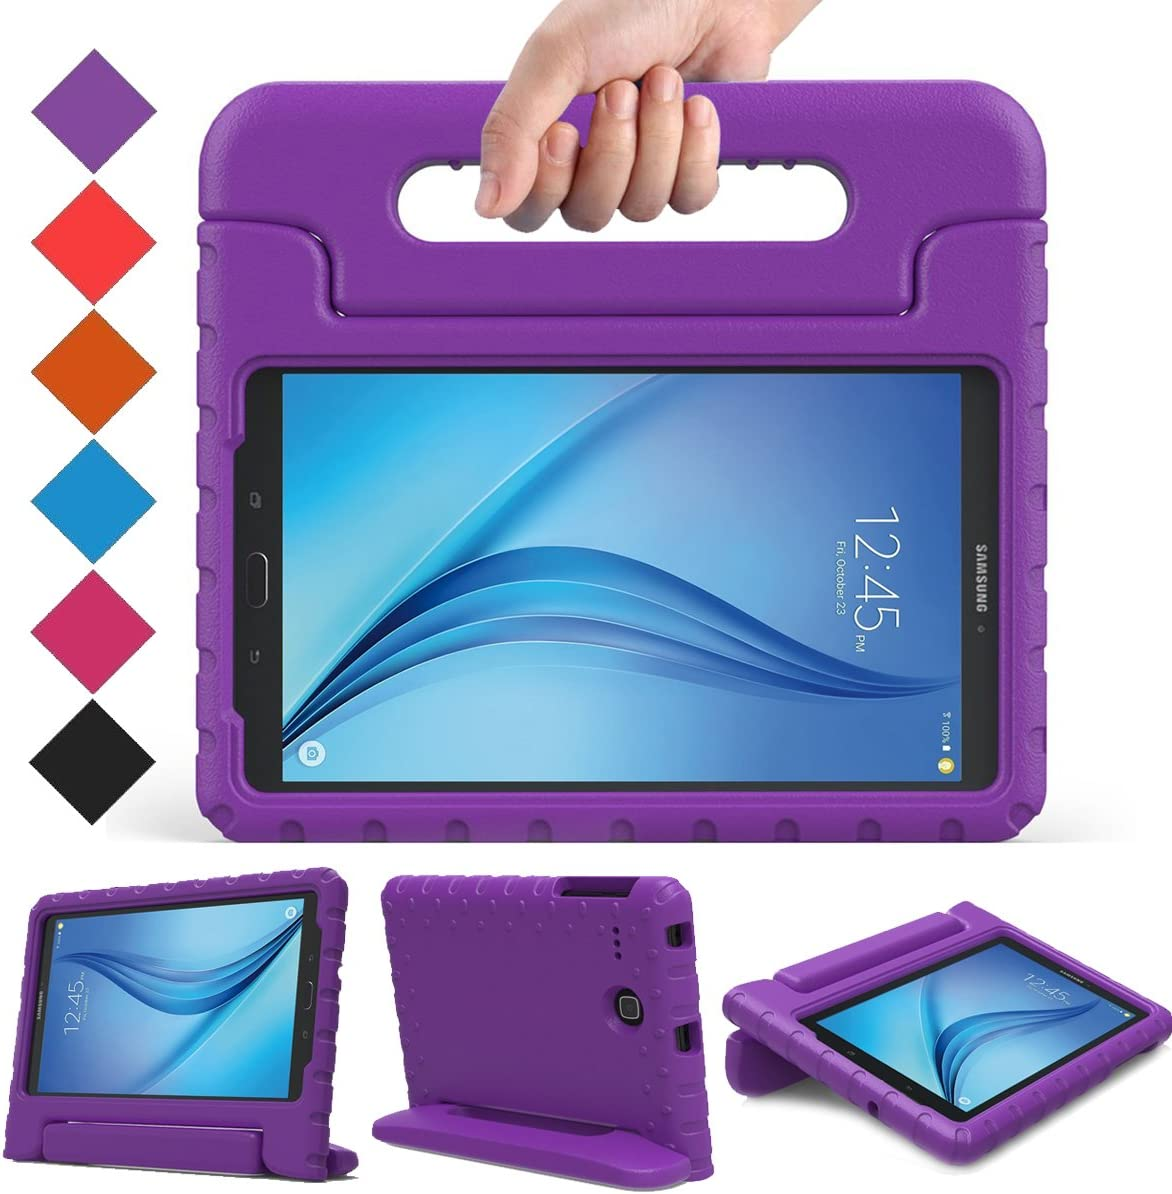 BMOUO Kids Case for Samsung Galaxy Tab E 8.0 inch - EVA ShockProof Case Light Weight Kids Case Super Protection Cover Handle Stand Case for Kids Children for Samsung Galaxy TabE 8-inch Tablet - Purple